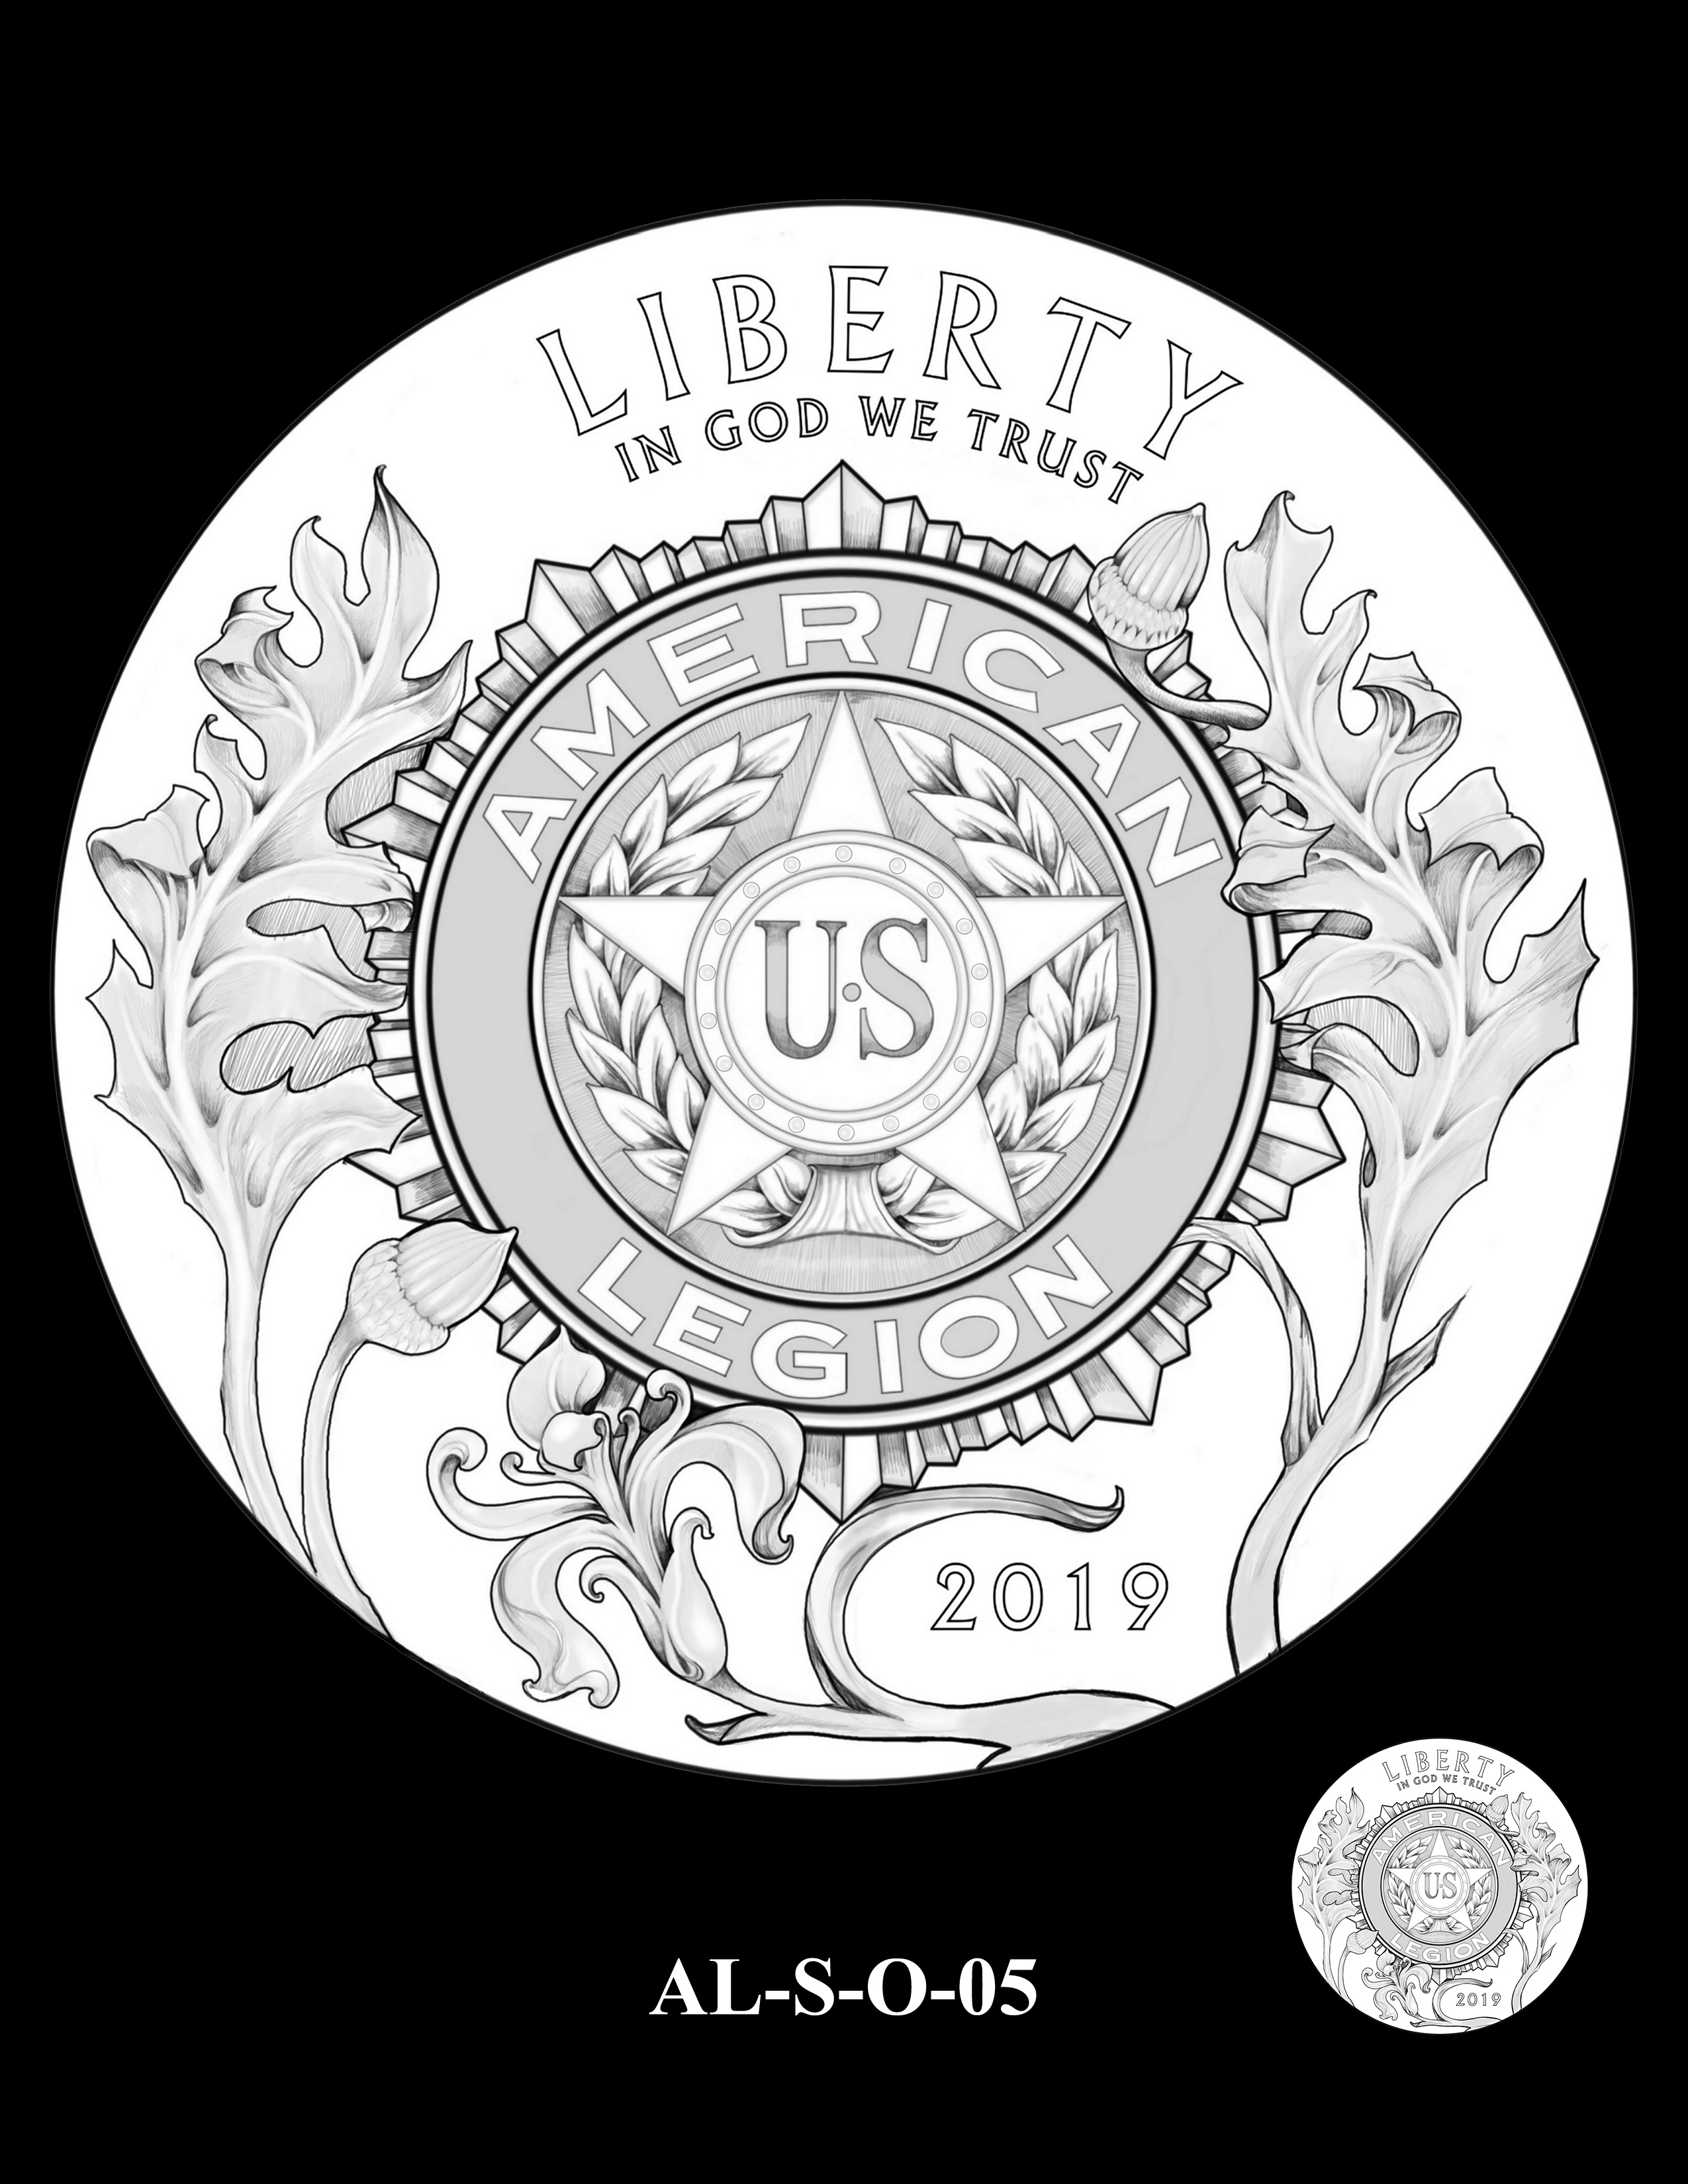 AL-S-O-05 -- 2019 American Legion 100th Anniversary Commemorative Coin Program - Silver Obverse